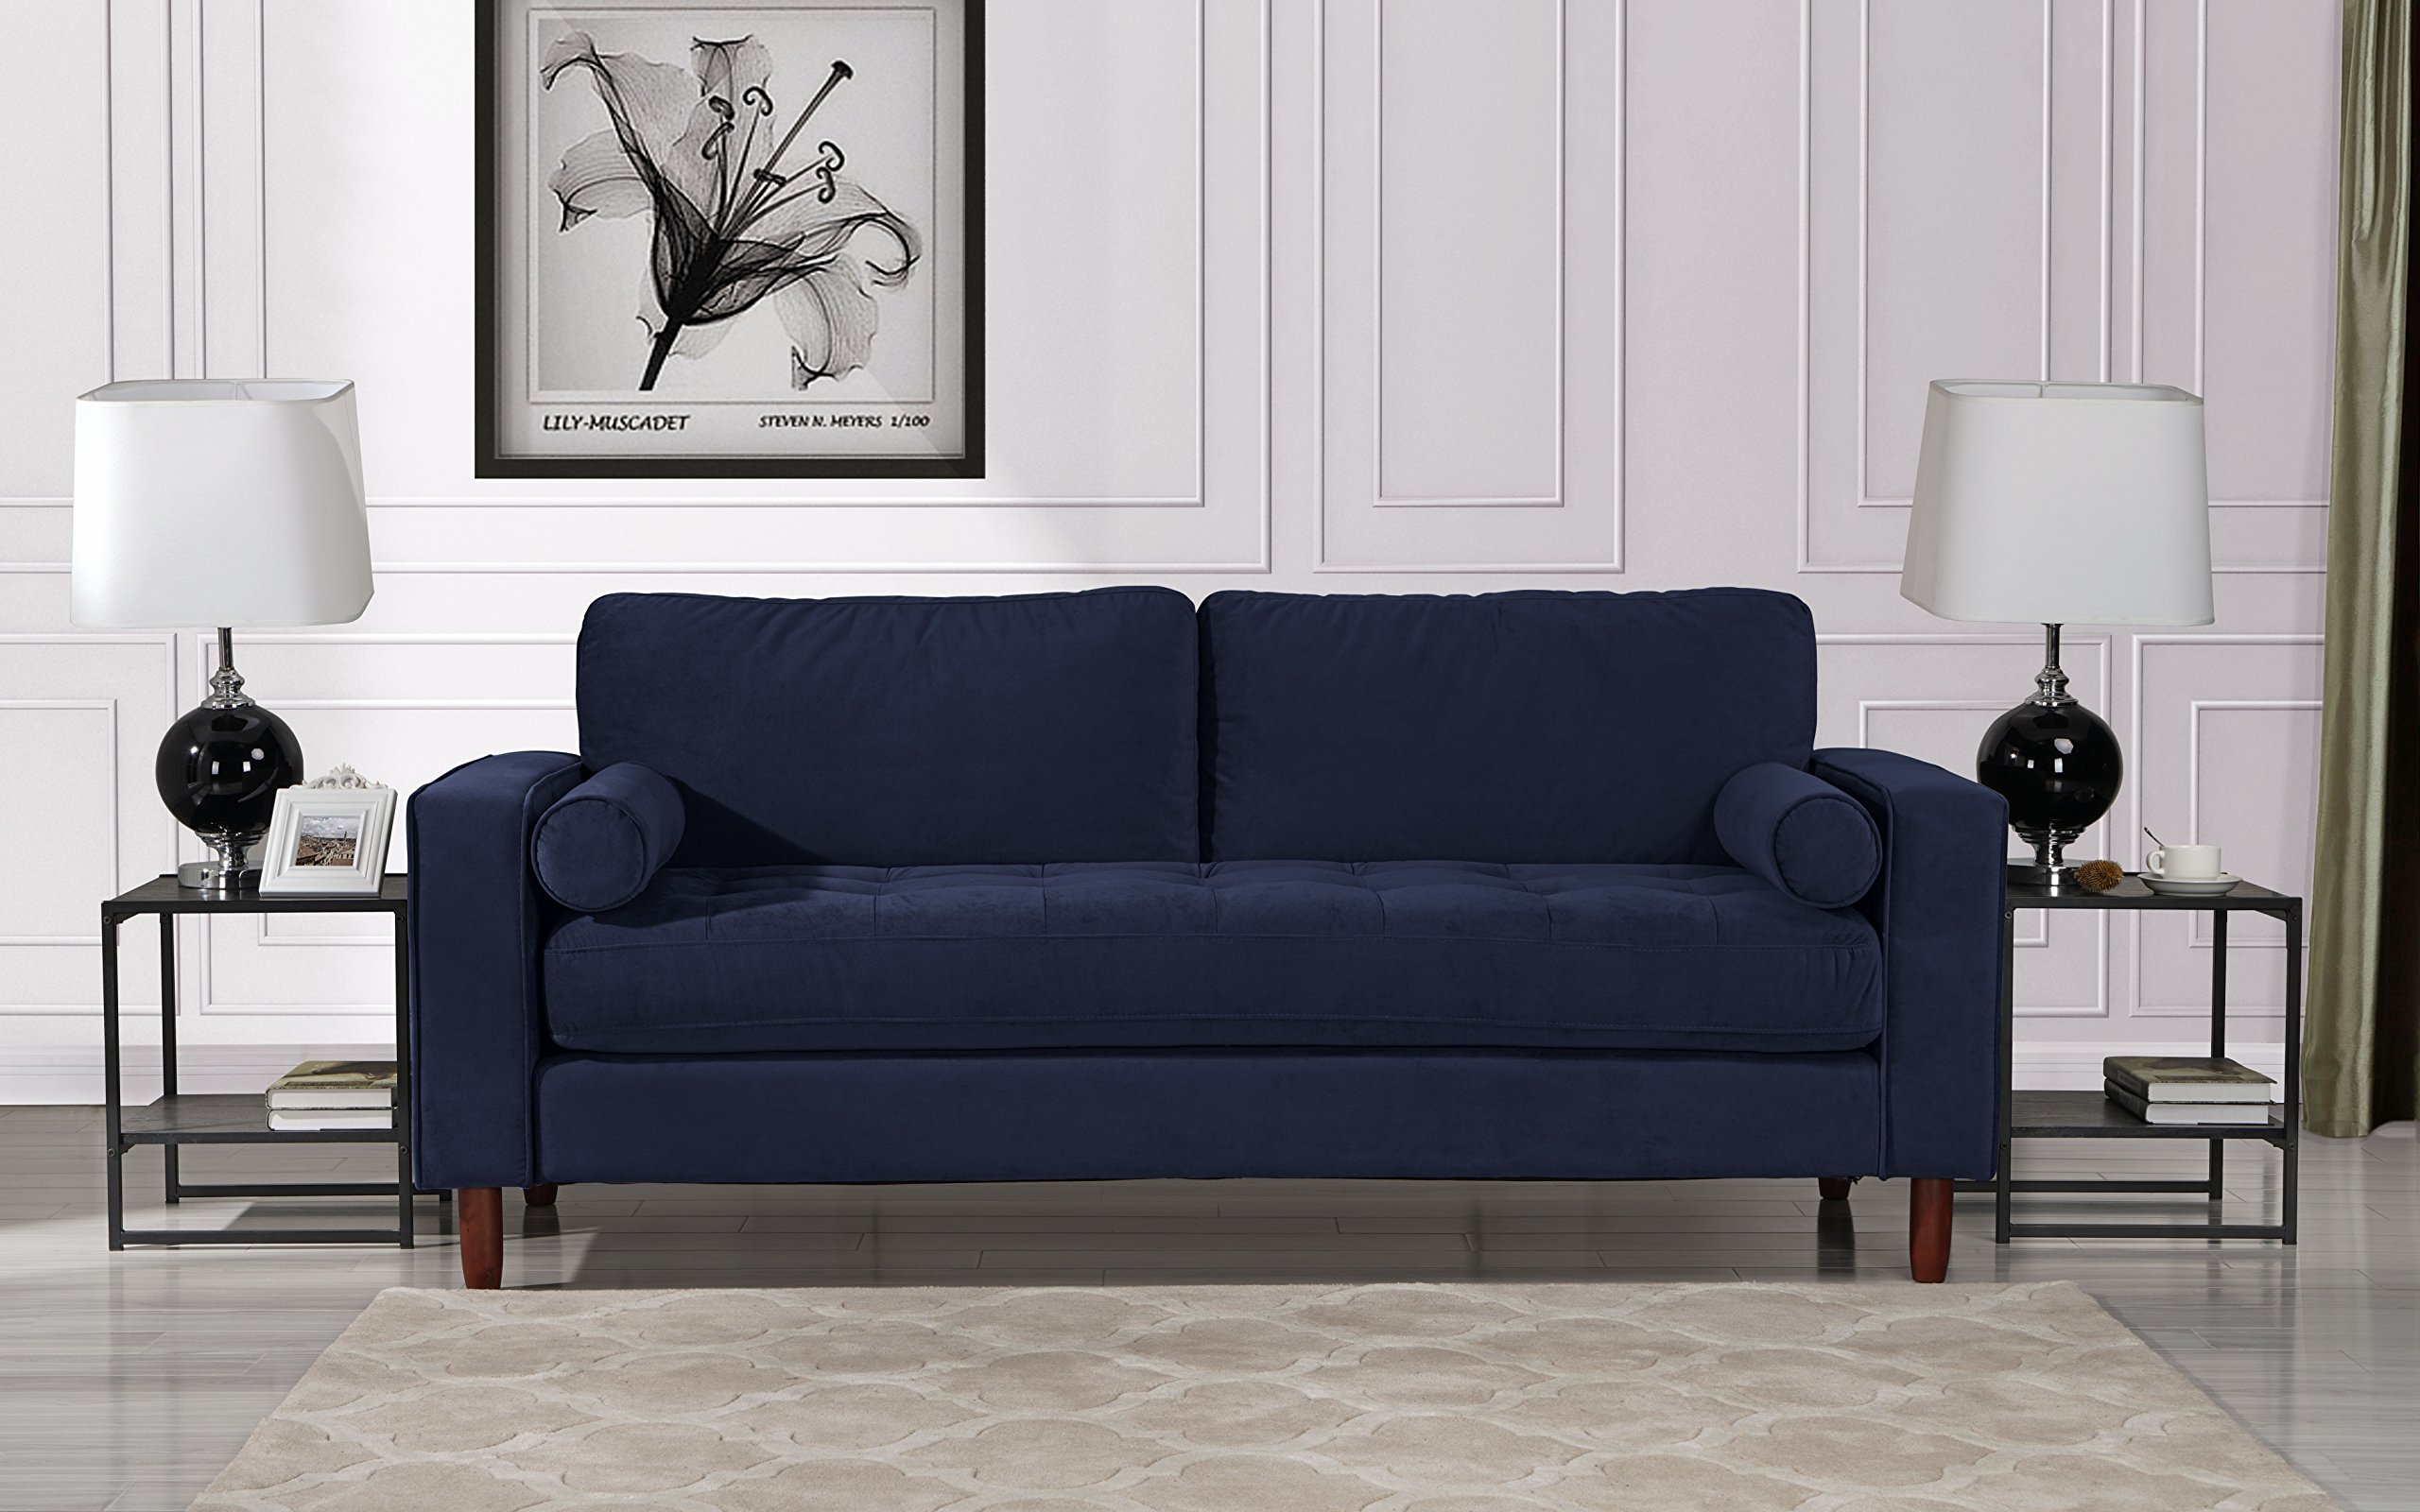 Mid Century Modern Velvet Fabric Sofa, Couch with Bolster Pillows (Navy) by DIVANO ROMA FURNITURE